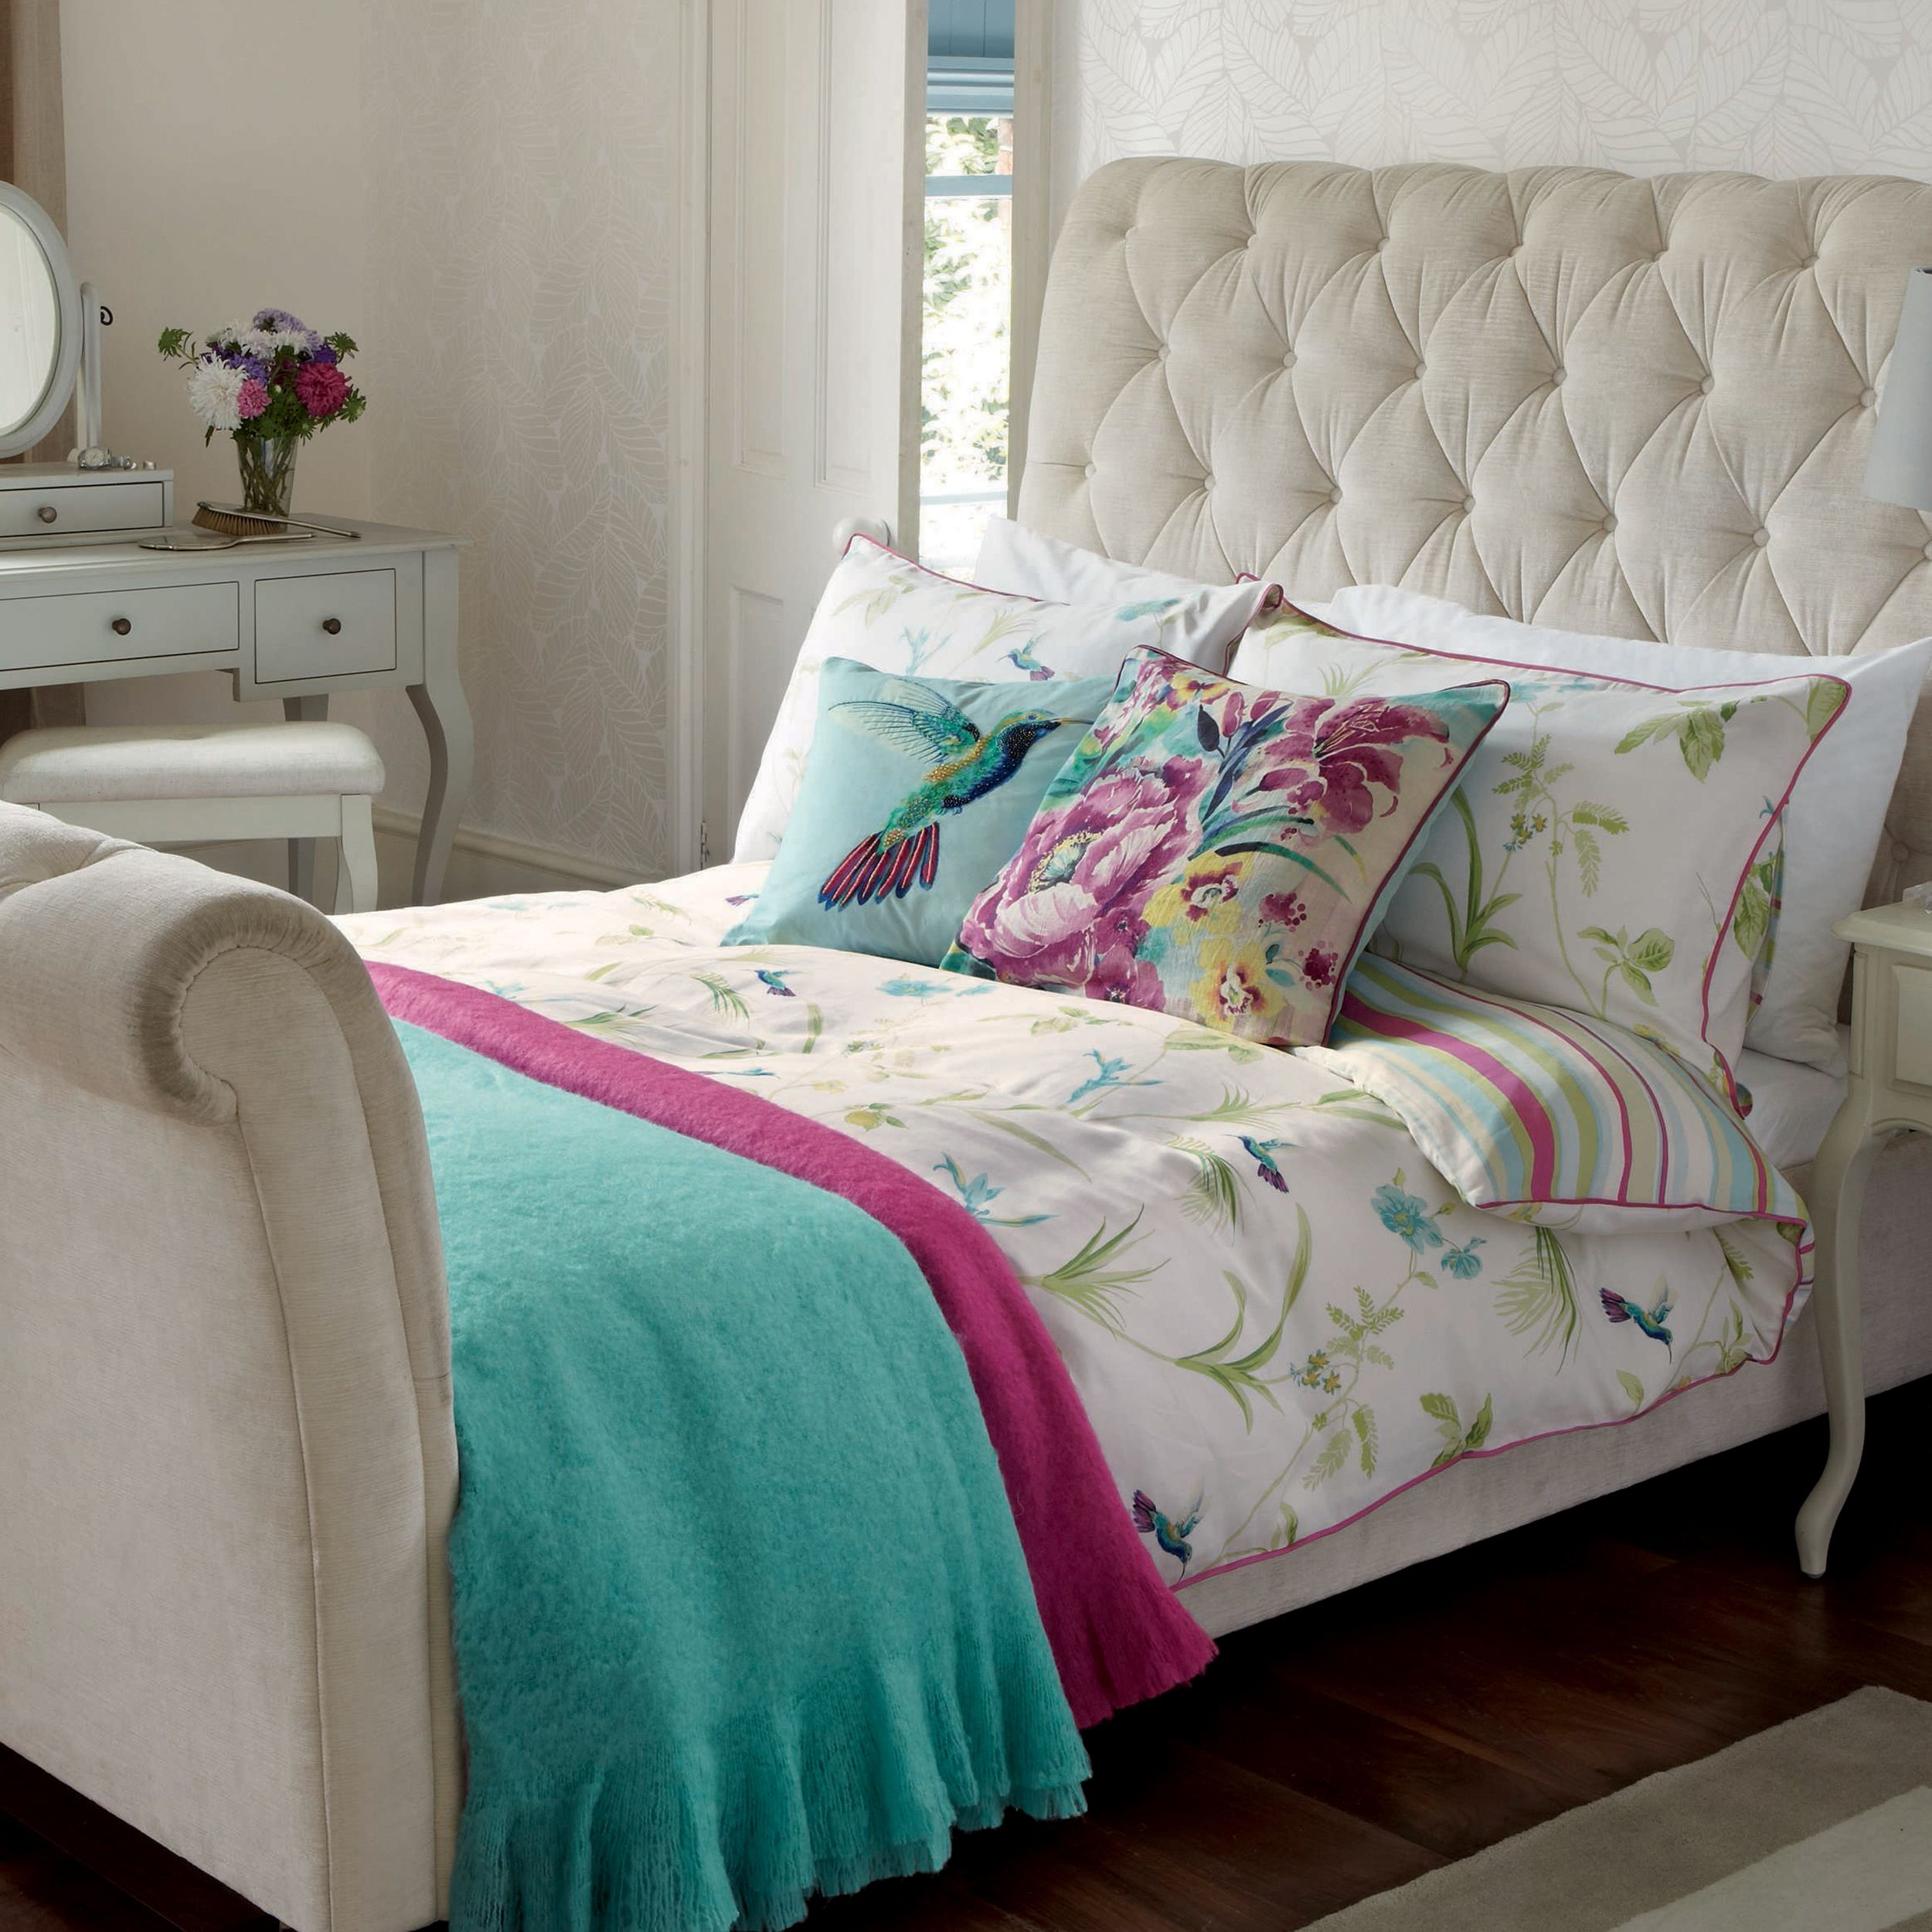 Hummingbird Bed Linen Part - 39: Orchid Print Duvet Cover At Laura Ashley